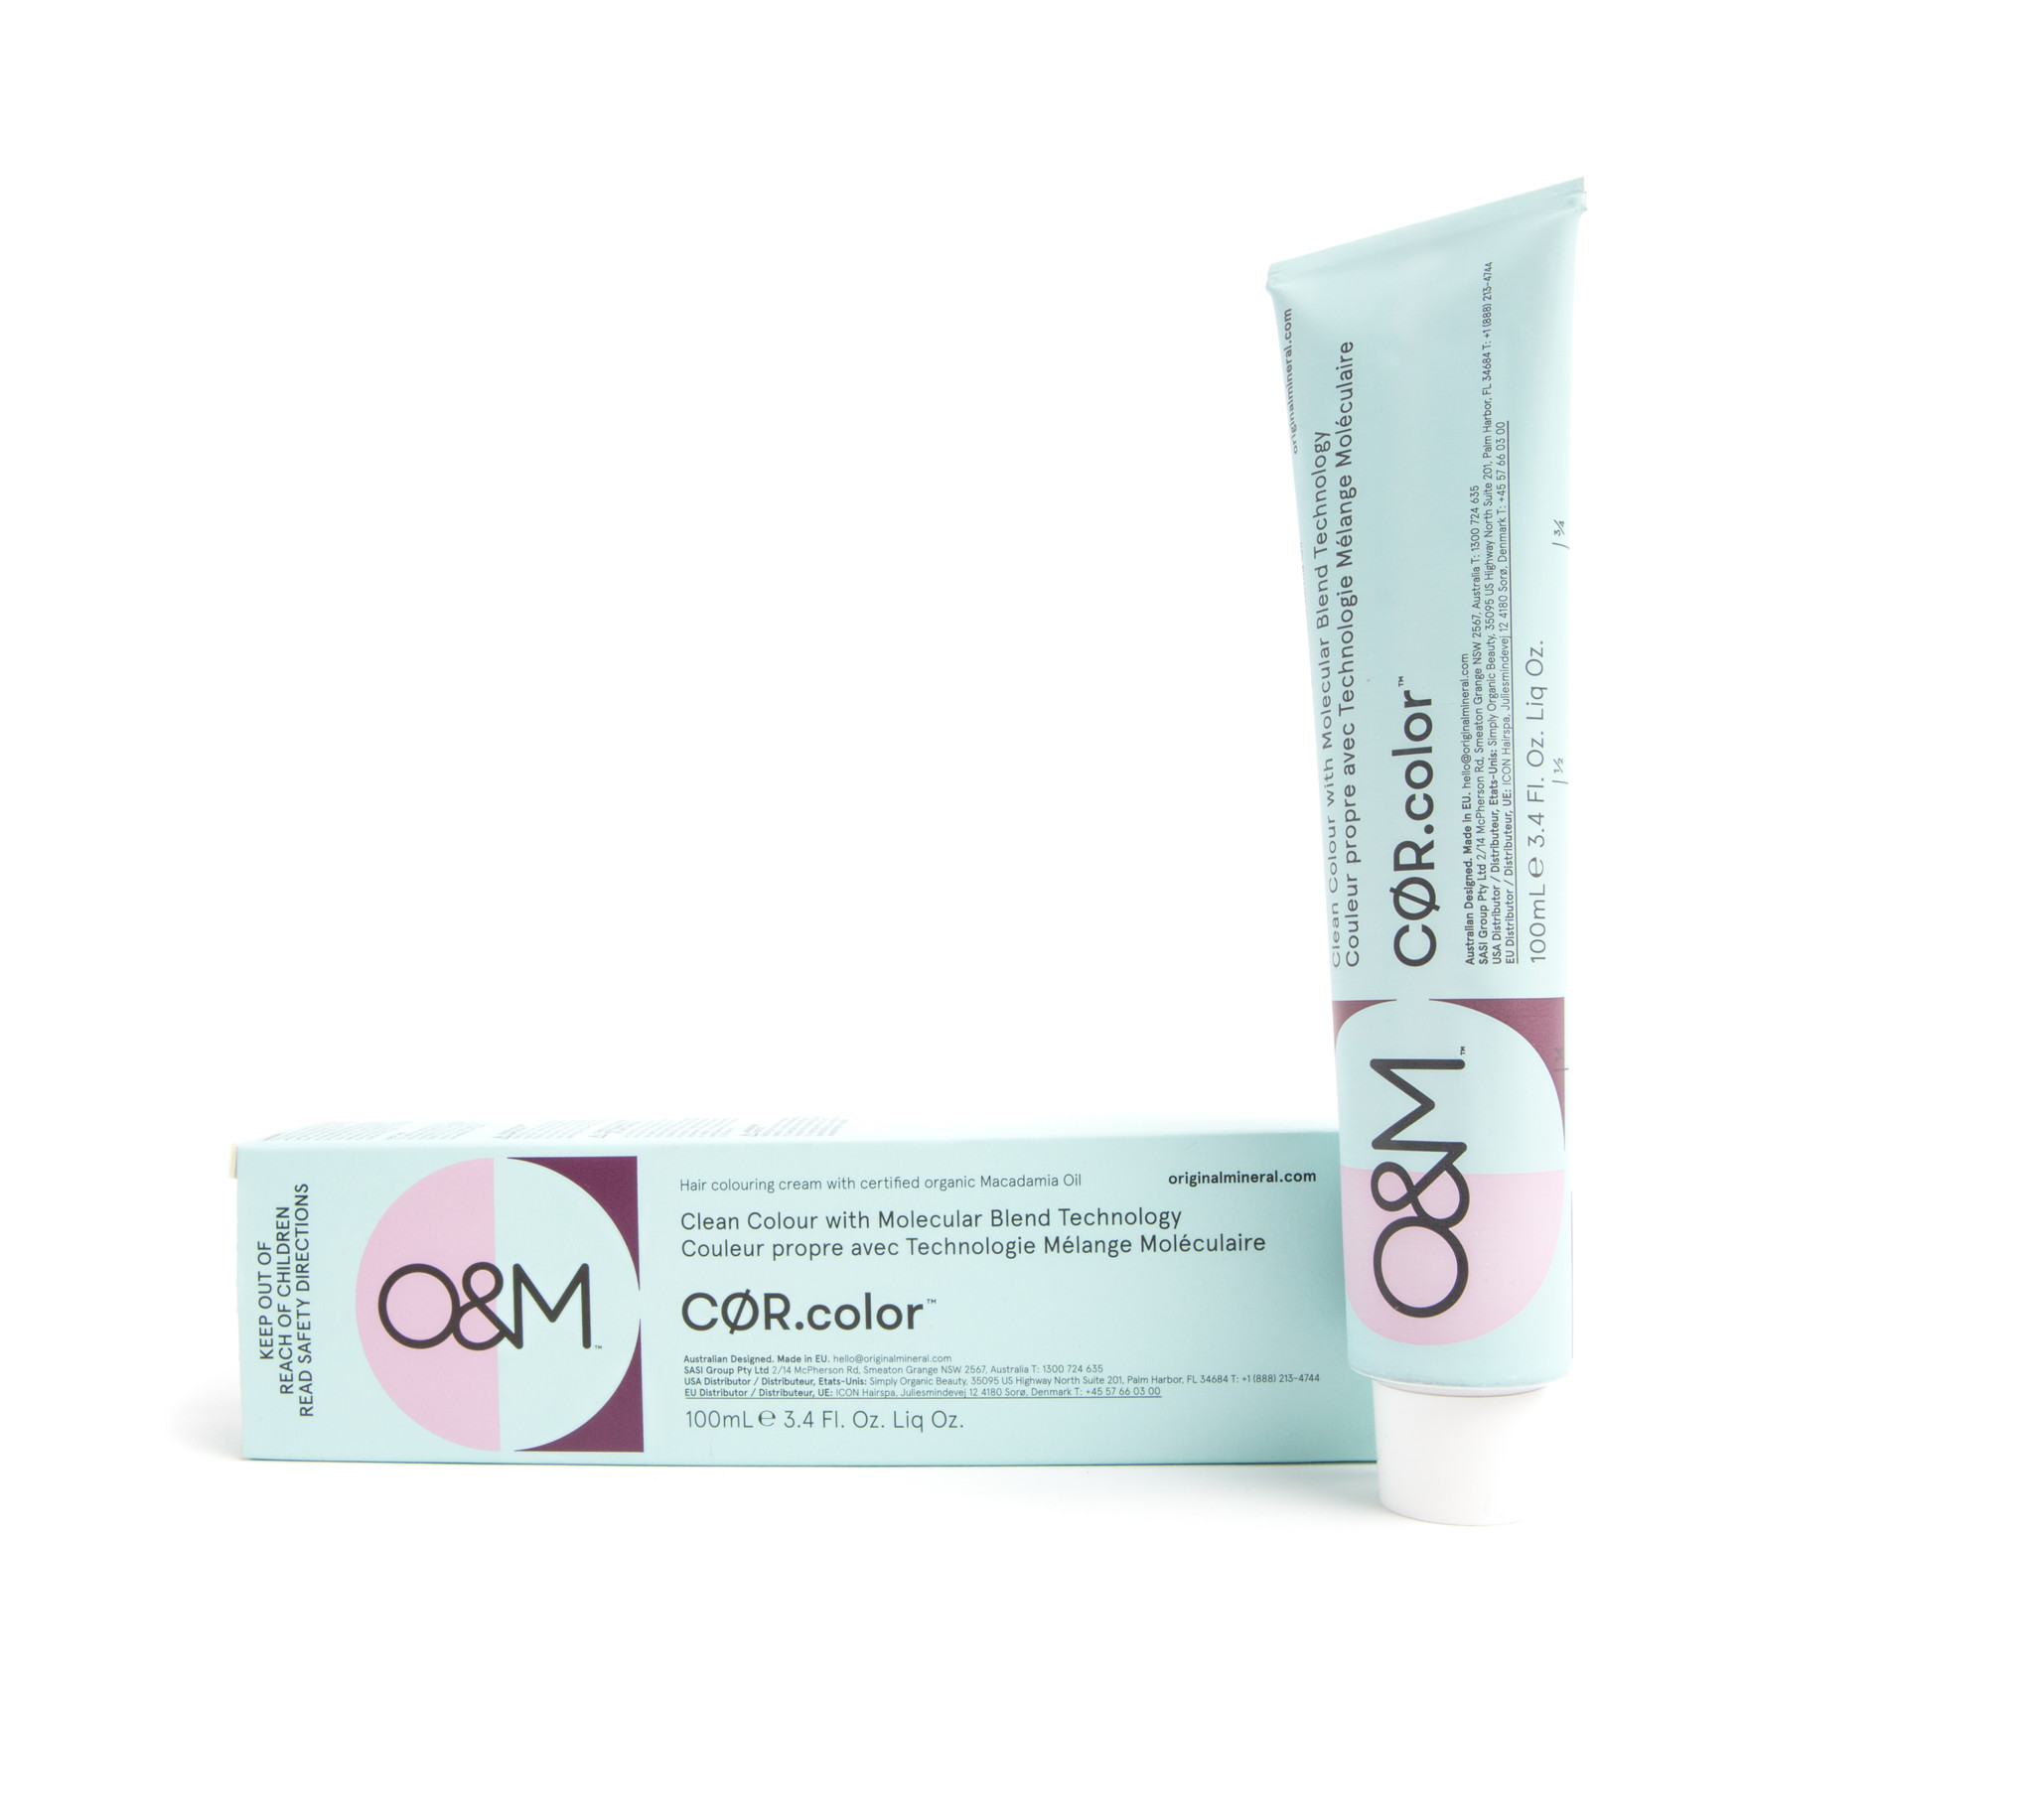 O&M - Original Mineral O&M CØR.color Very Light Red Blonde 9.5 100g